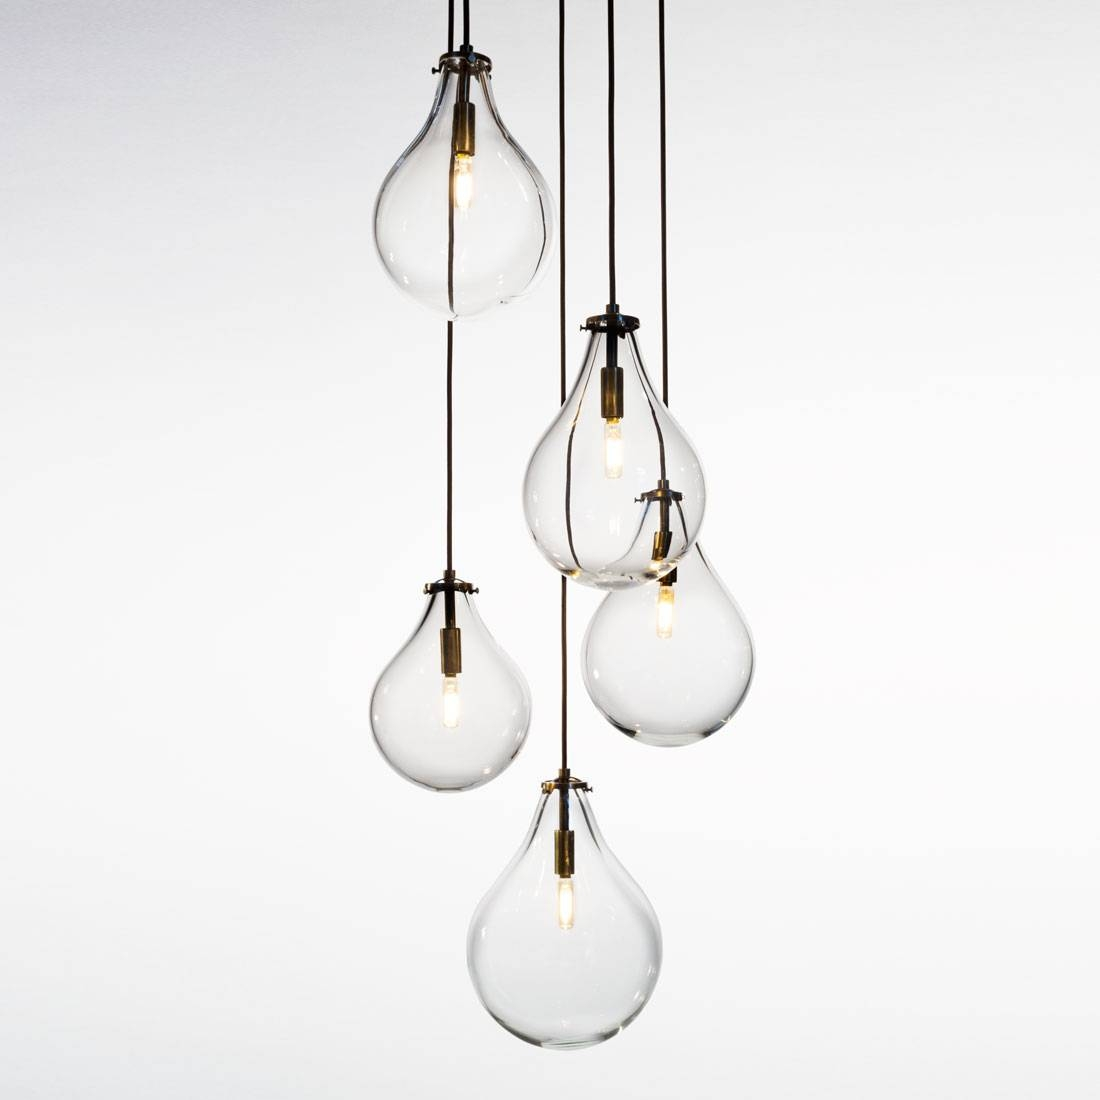 Teardrop Chandelier - Tracy Glover Studio - Official Website regarding Teardrop Pendant Lights Fixtures (Image 13 of 15)